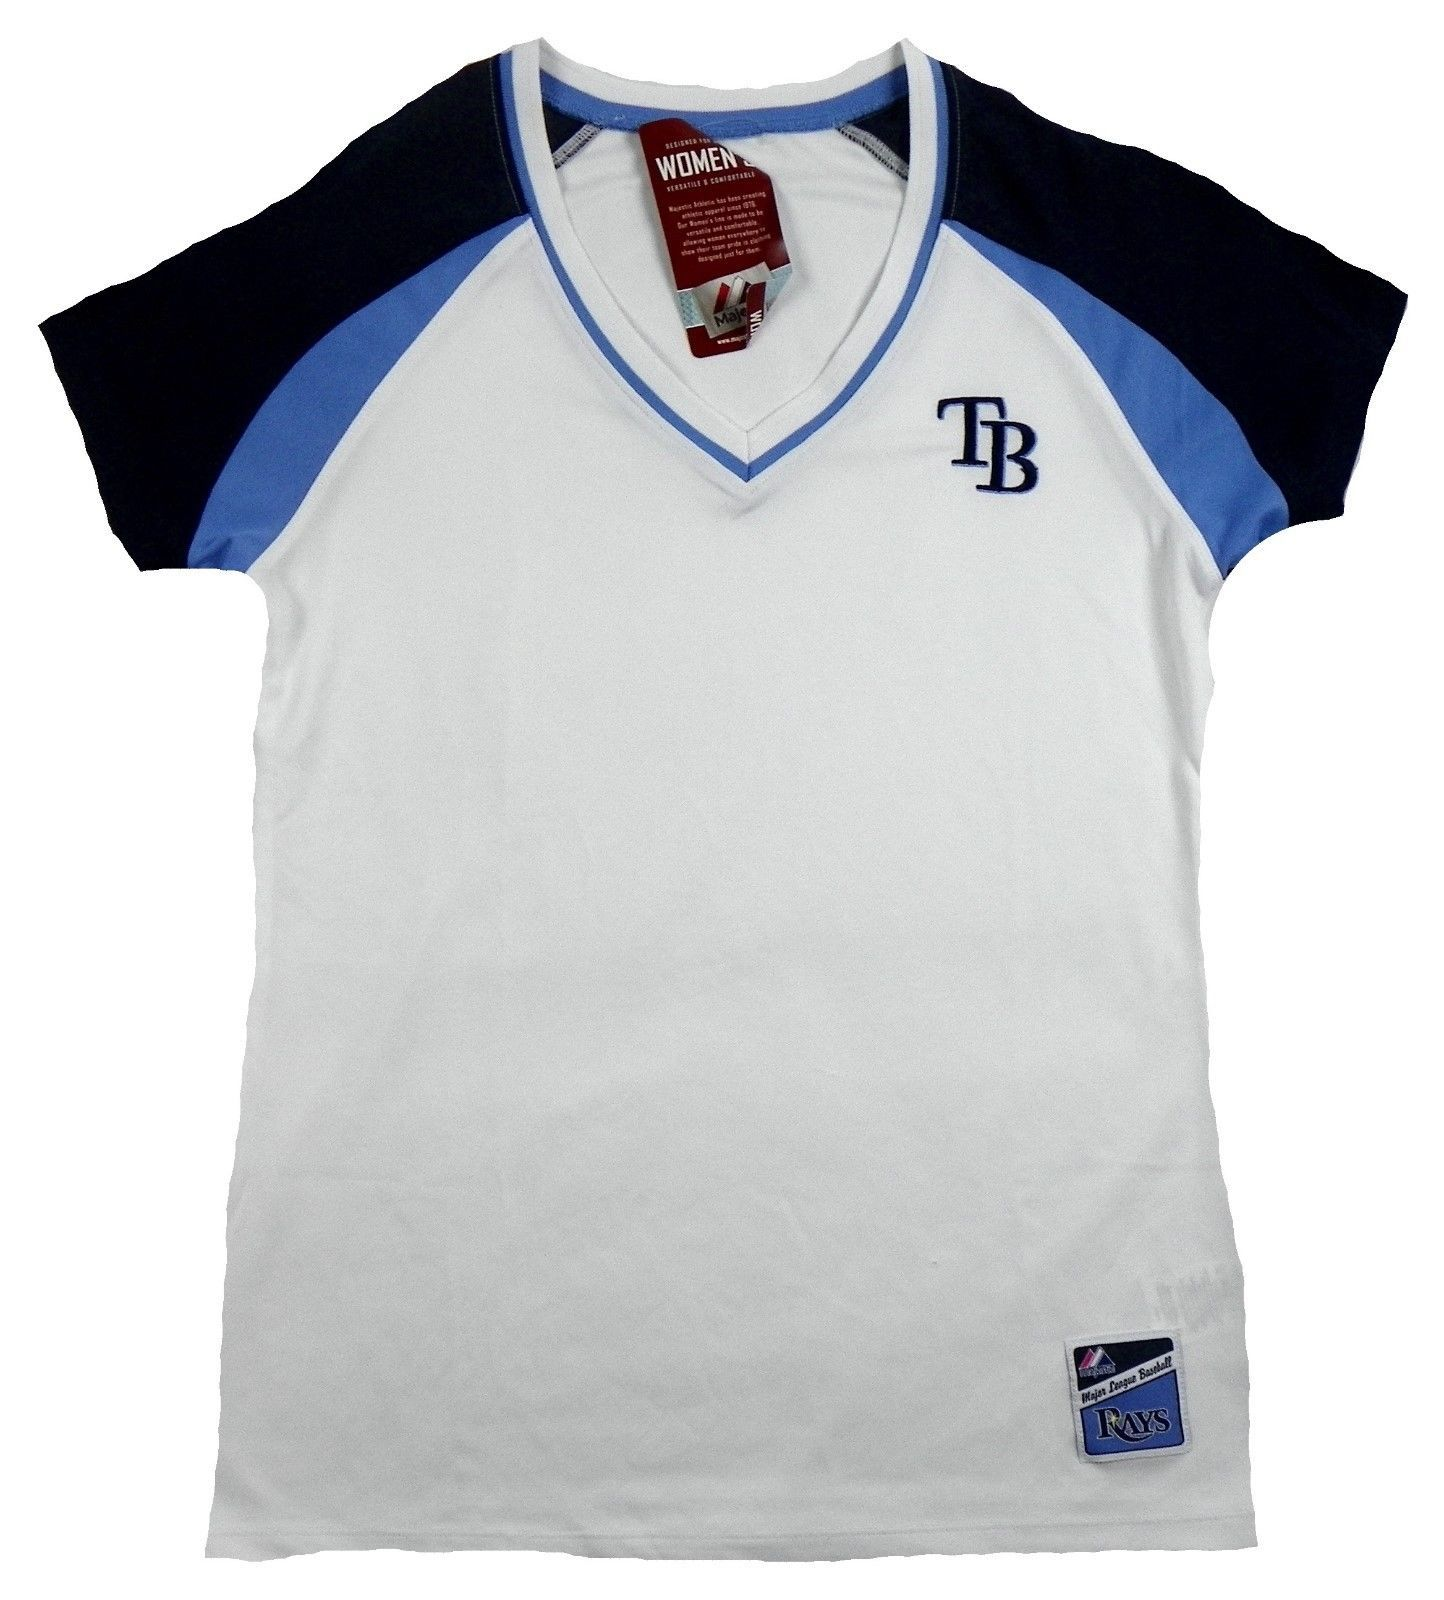 Women's Tampa Bay Rays Shirt MLB Baseball The Emerald Jersey Tee Pullover NEW